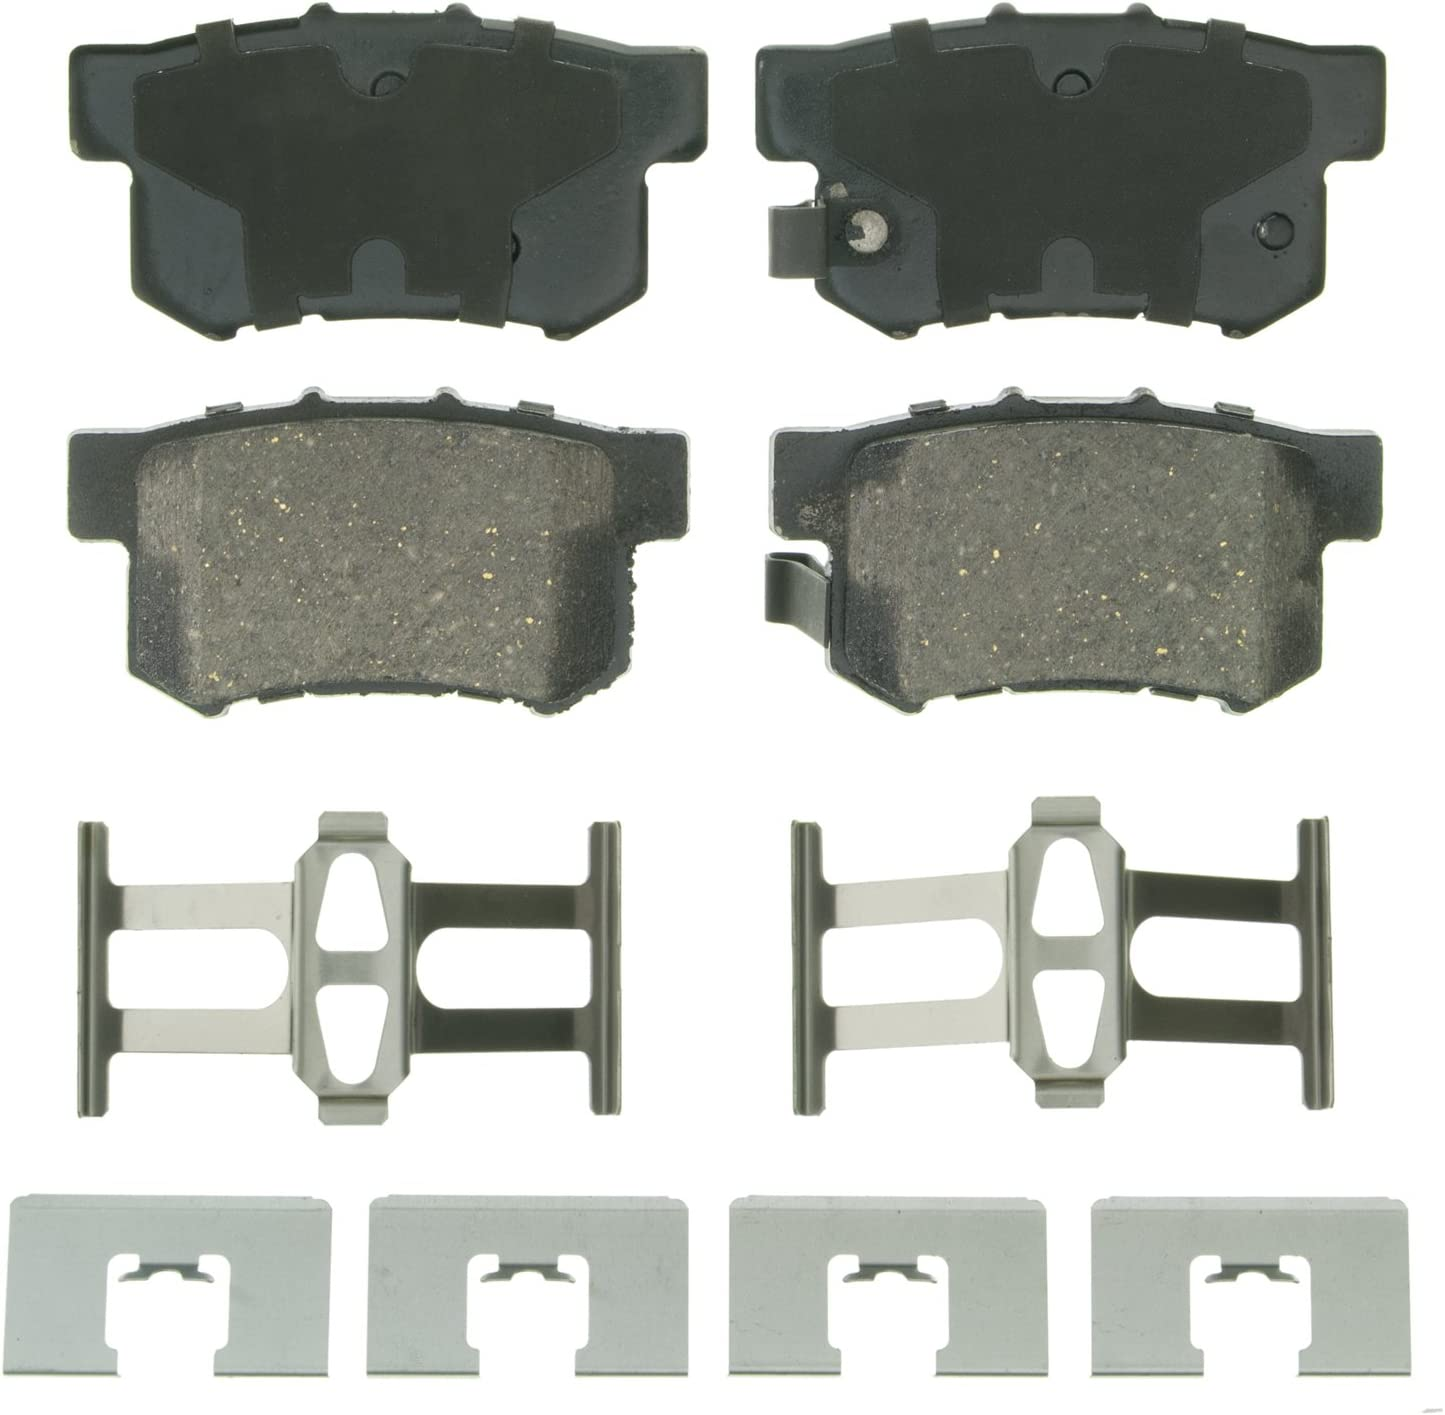 Wagner QuickStop ZD866 Ceramic Disc Pad Set Includes Pad Installation Hardware,